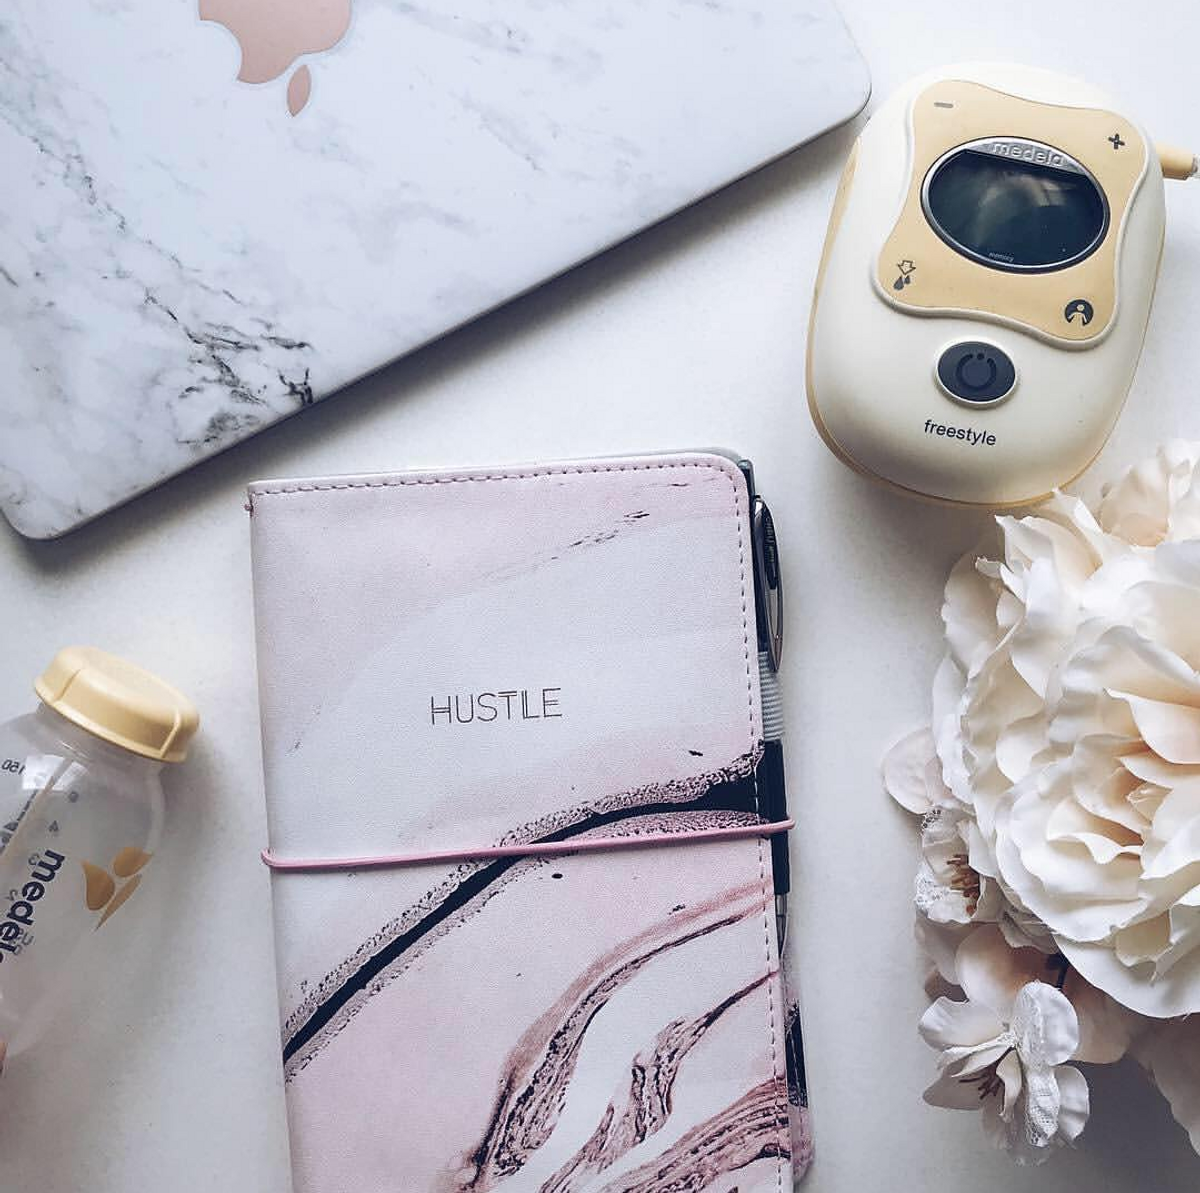 Choosing the right Medela breast pump according to your needs